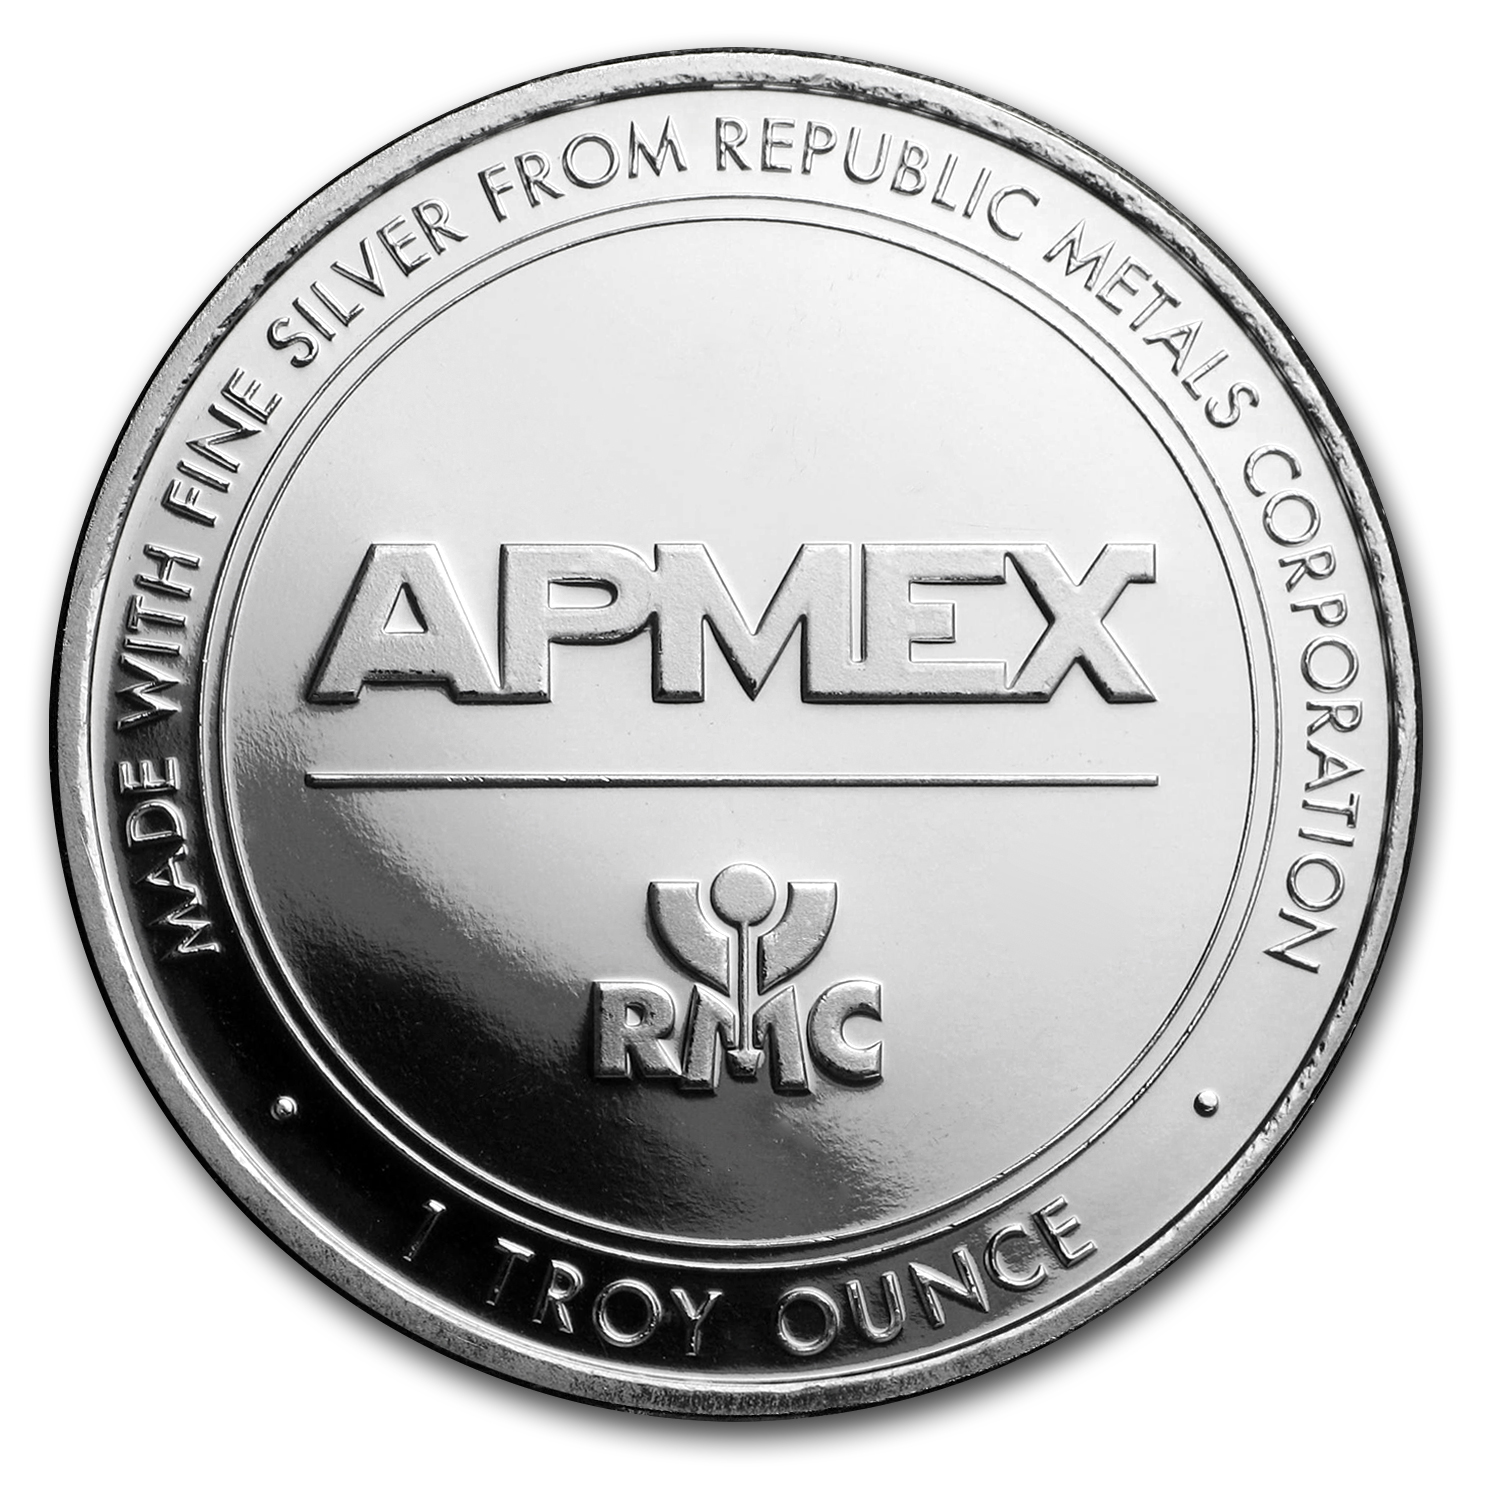 1 oz Silver Rounds - APMEX/RMC (Co-Brand)